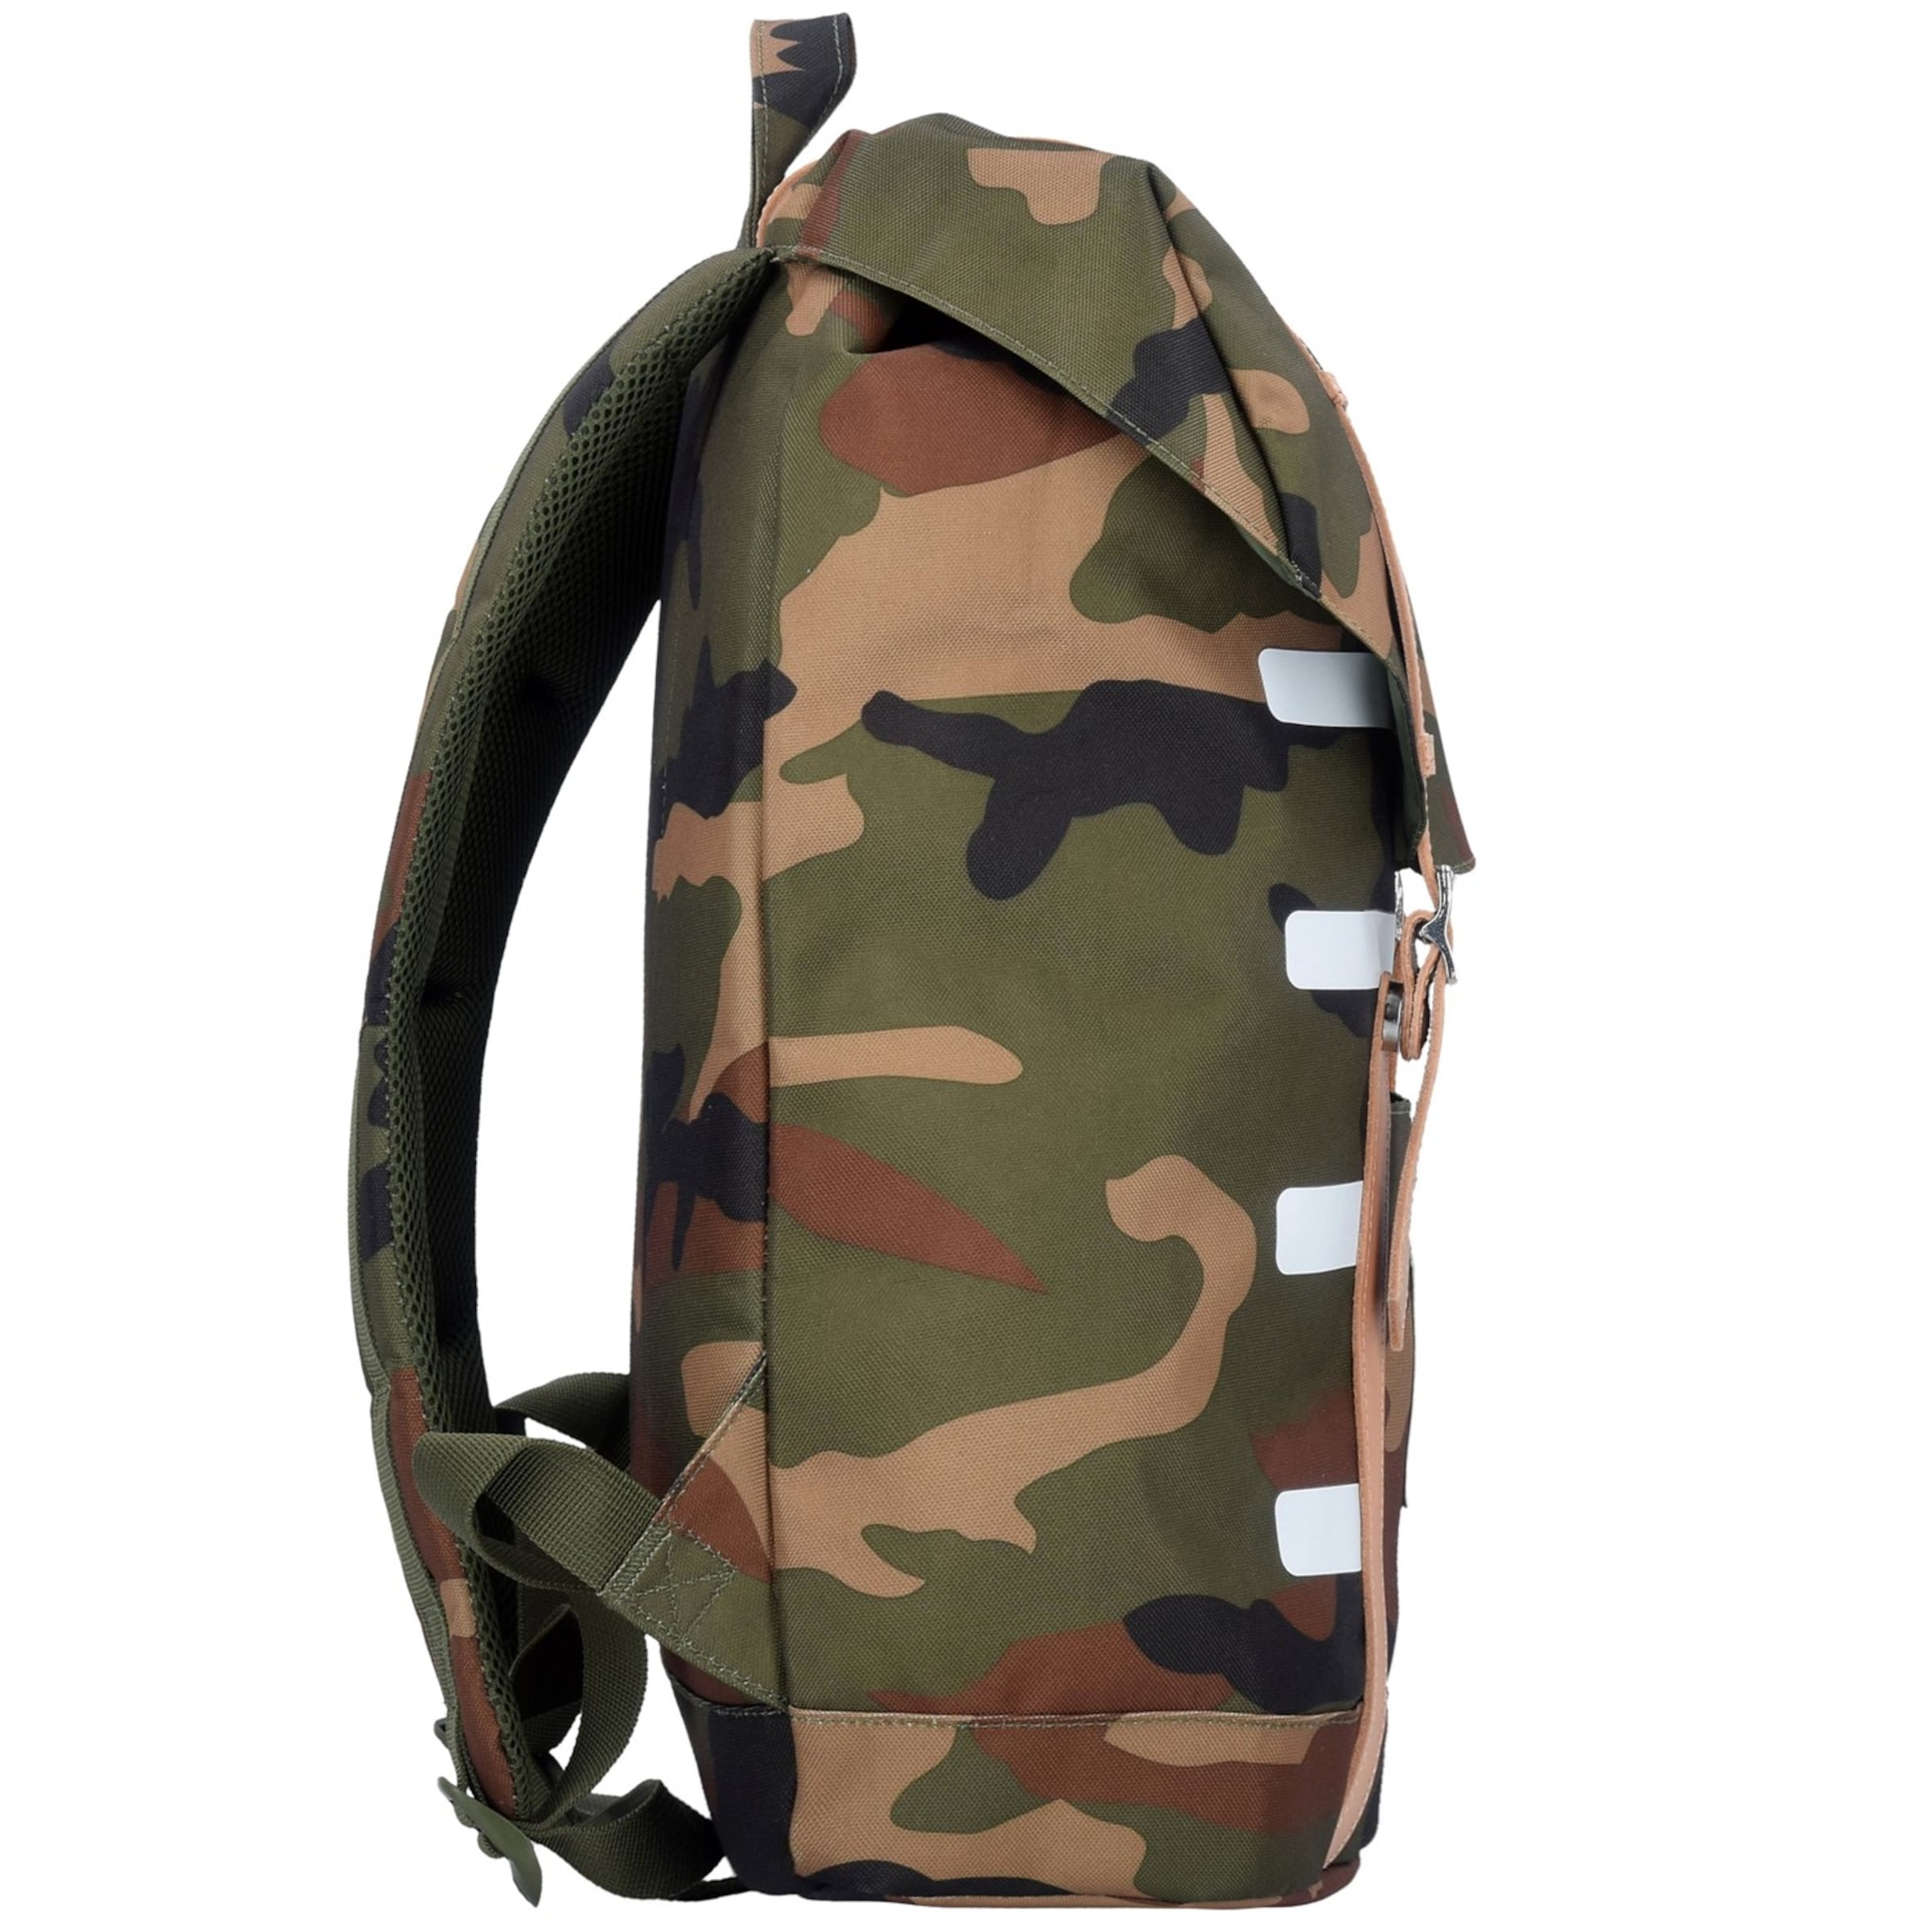 Herschel Rucksack mit Laptopfach 'Retreat Backpack 17 I' Bester Ort dJ7oik